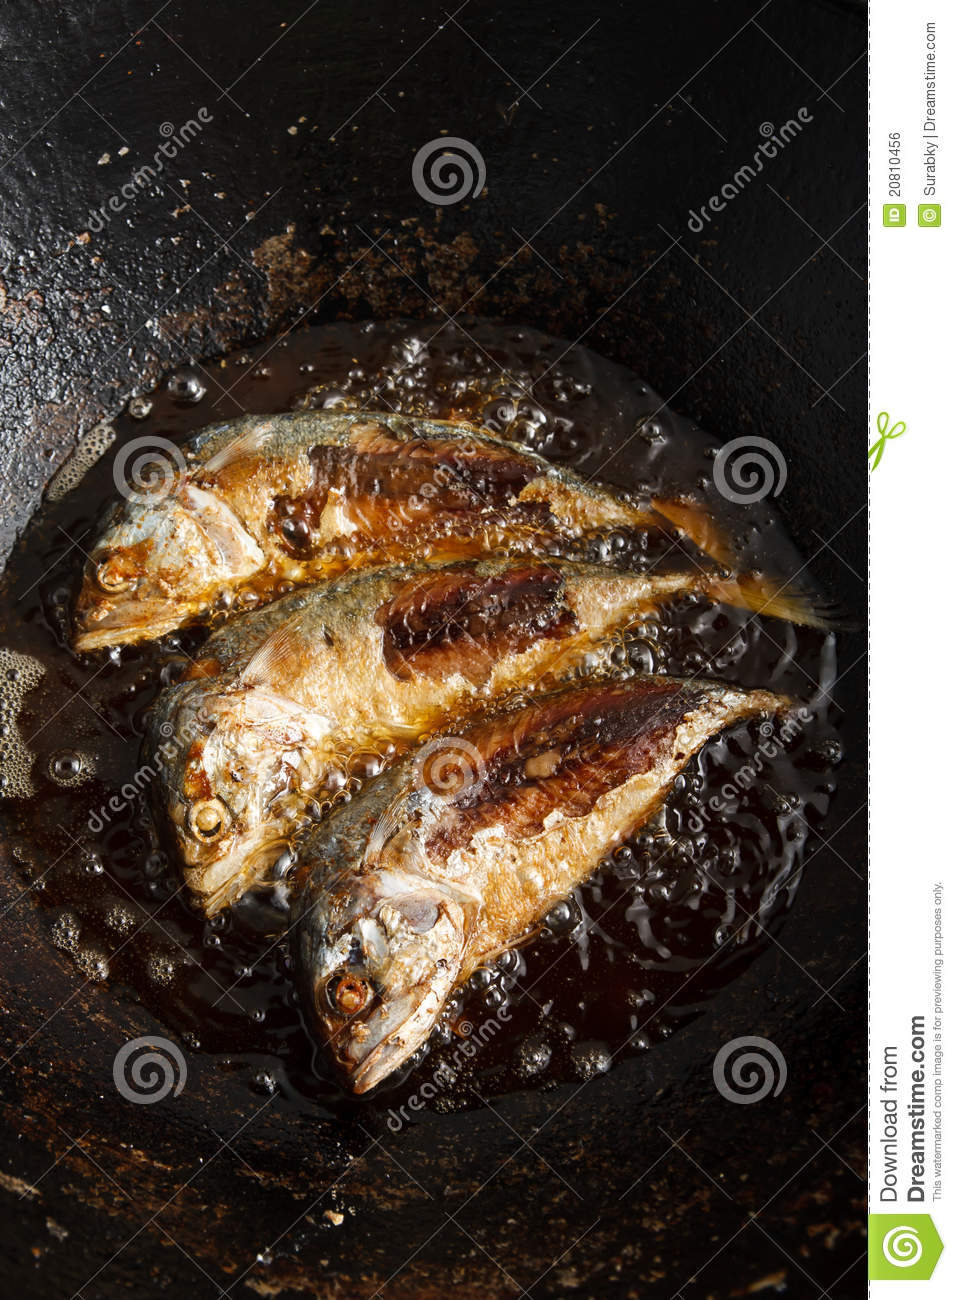 Fish frying in hot oil royalty free stock image image for Best oil for frying fish